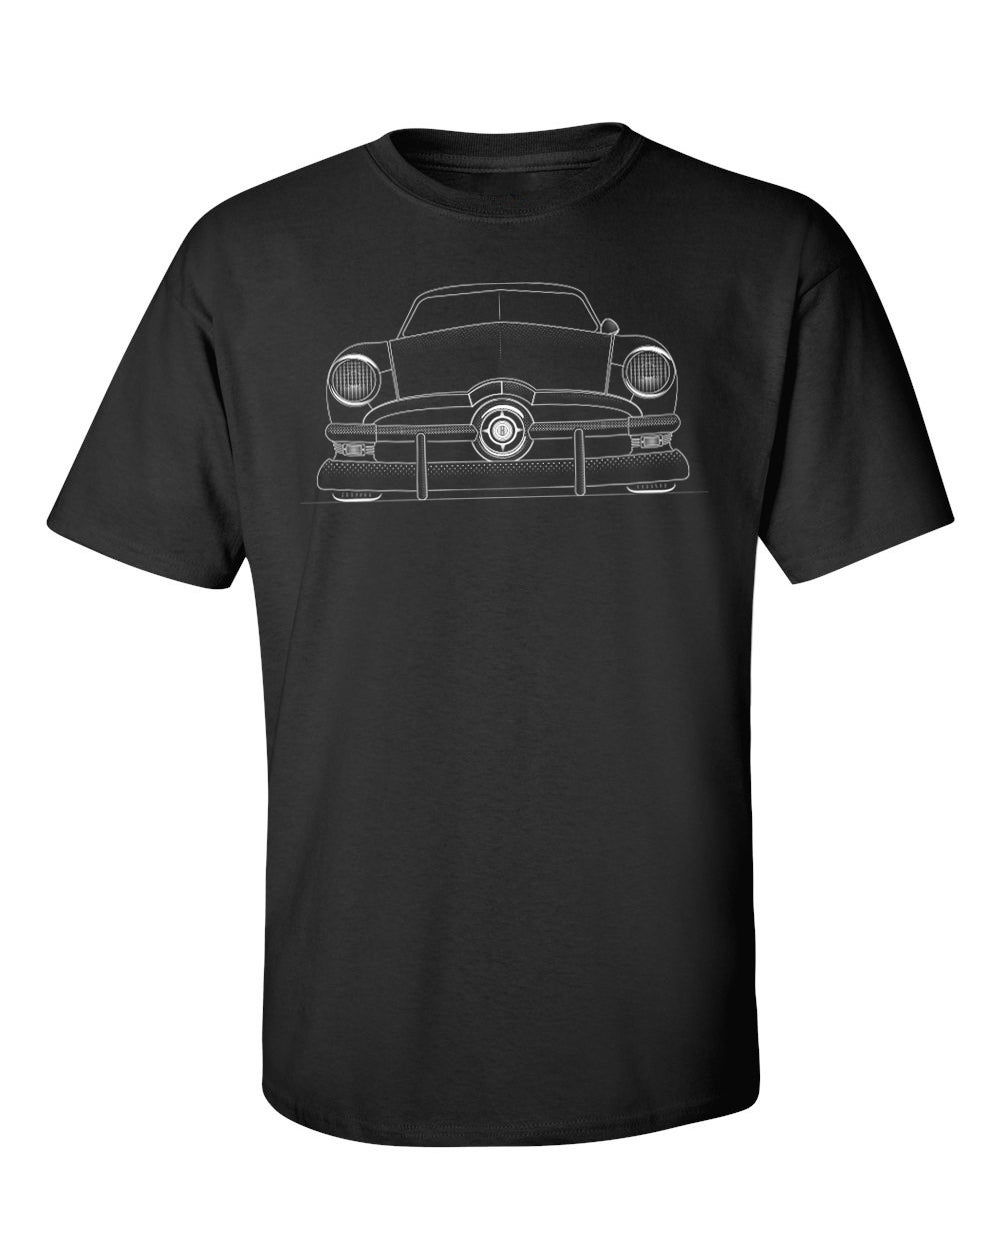 Image of 1950 FORD SHIRT